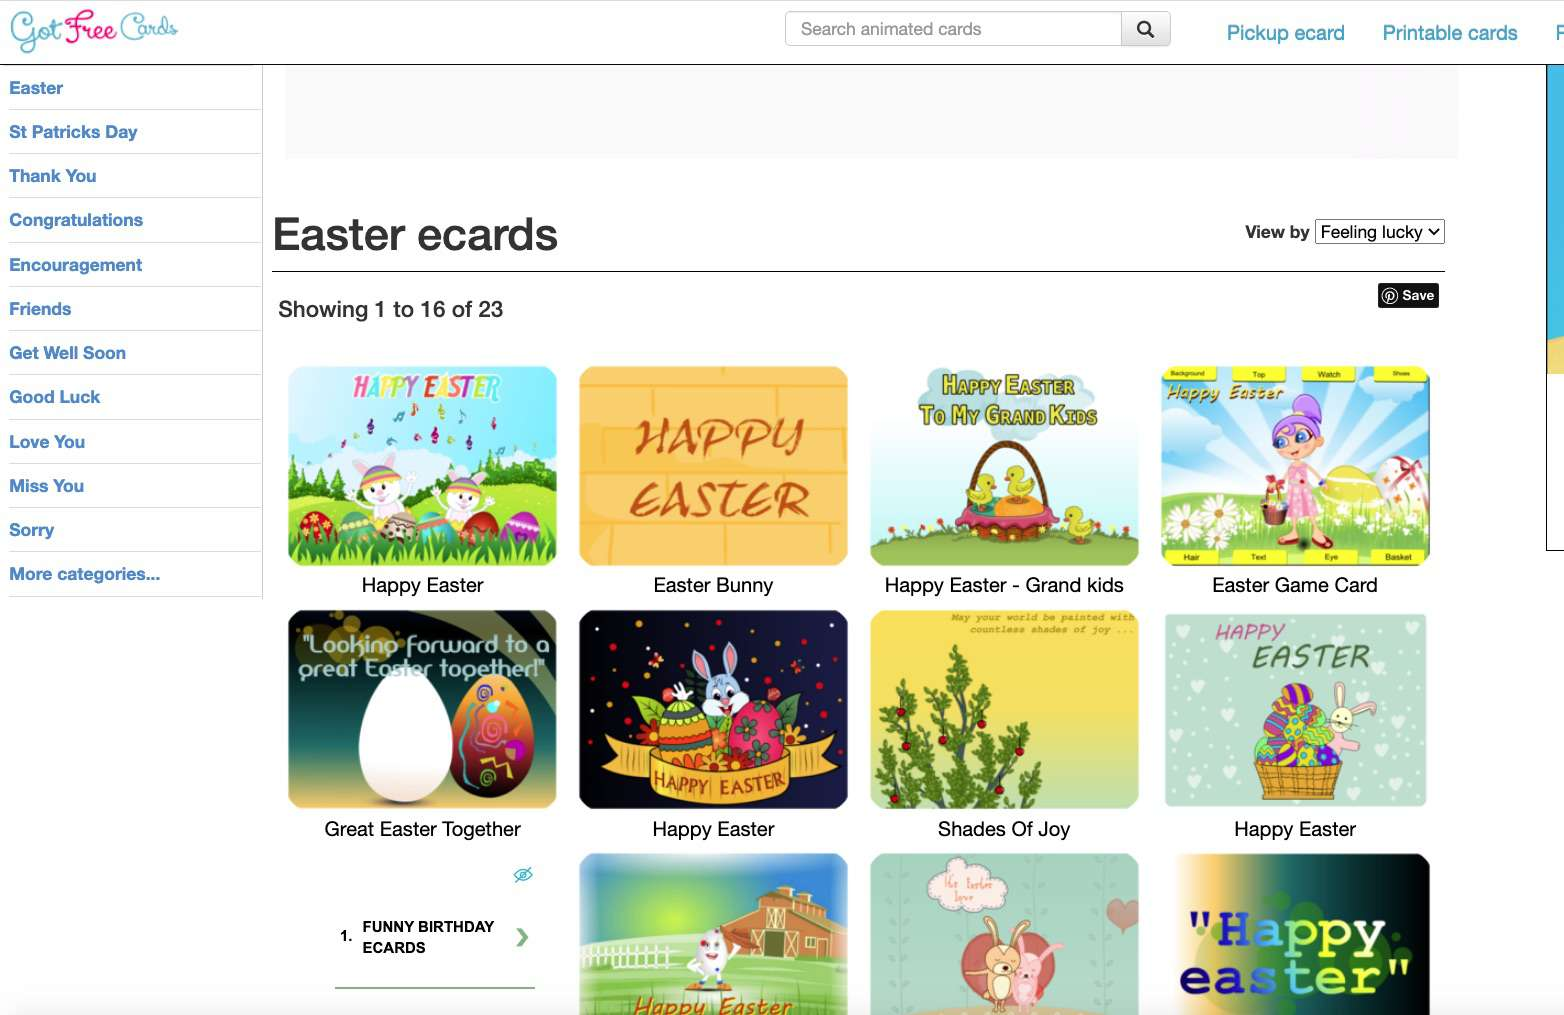 Got Free Cards free Easter Ecards